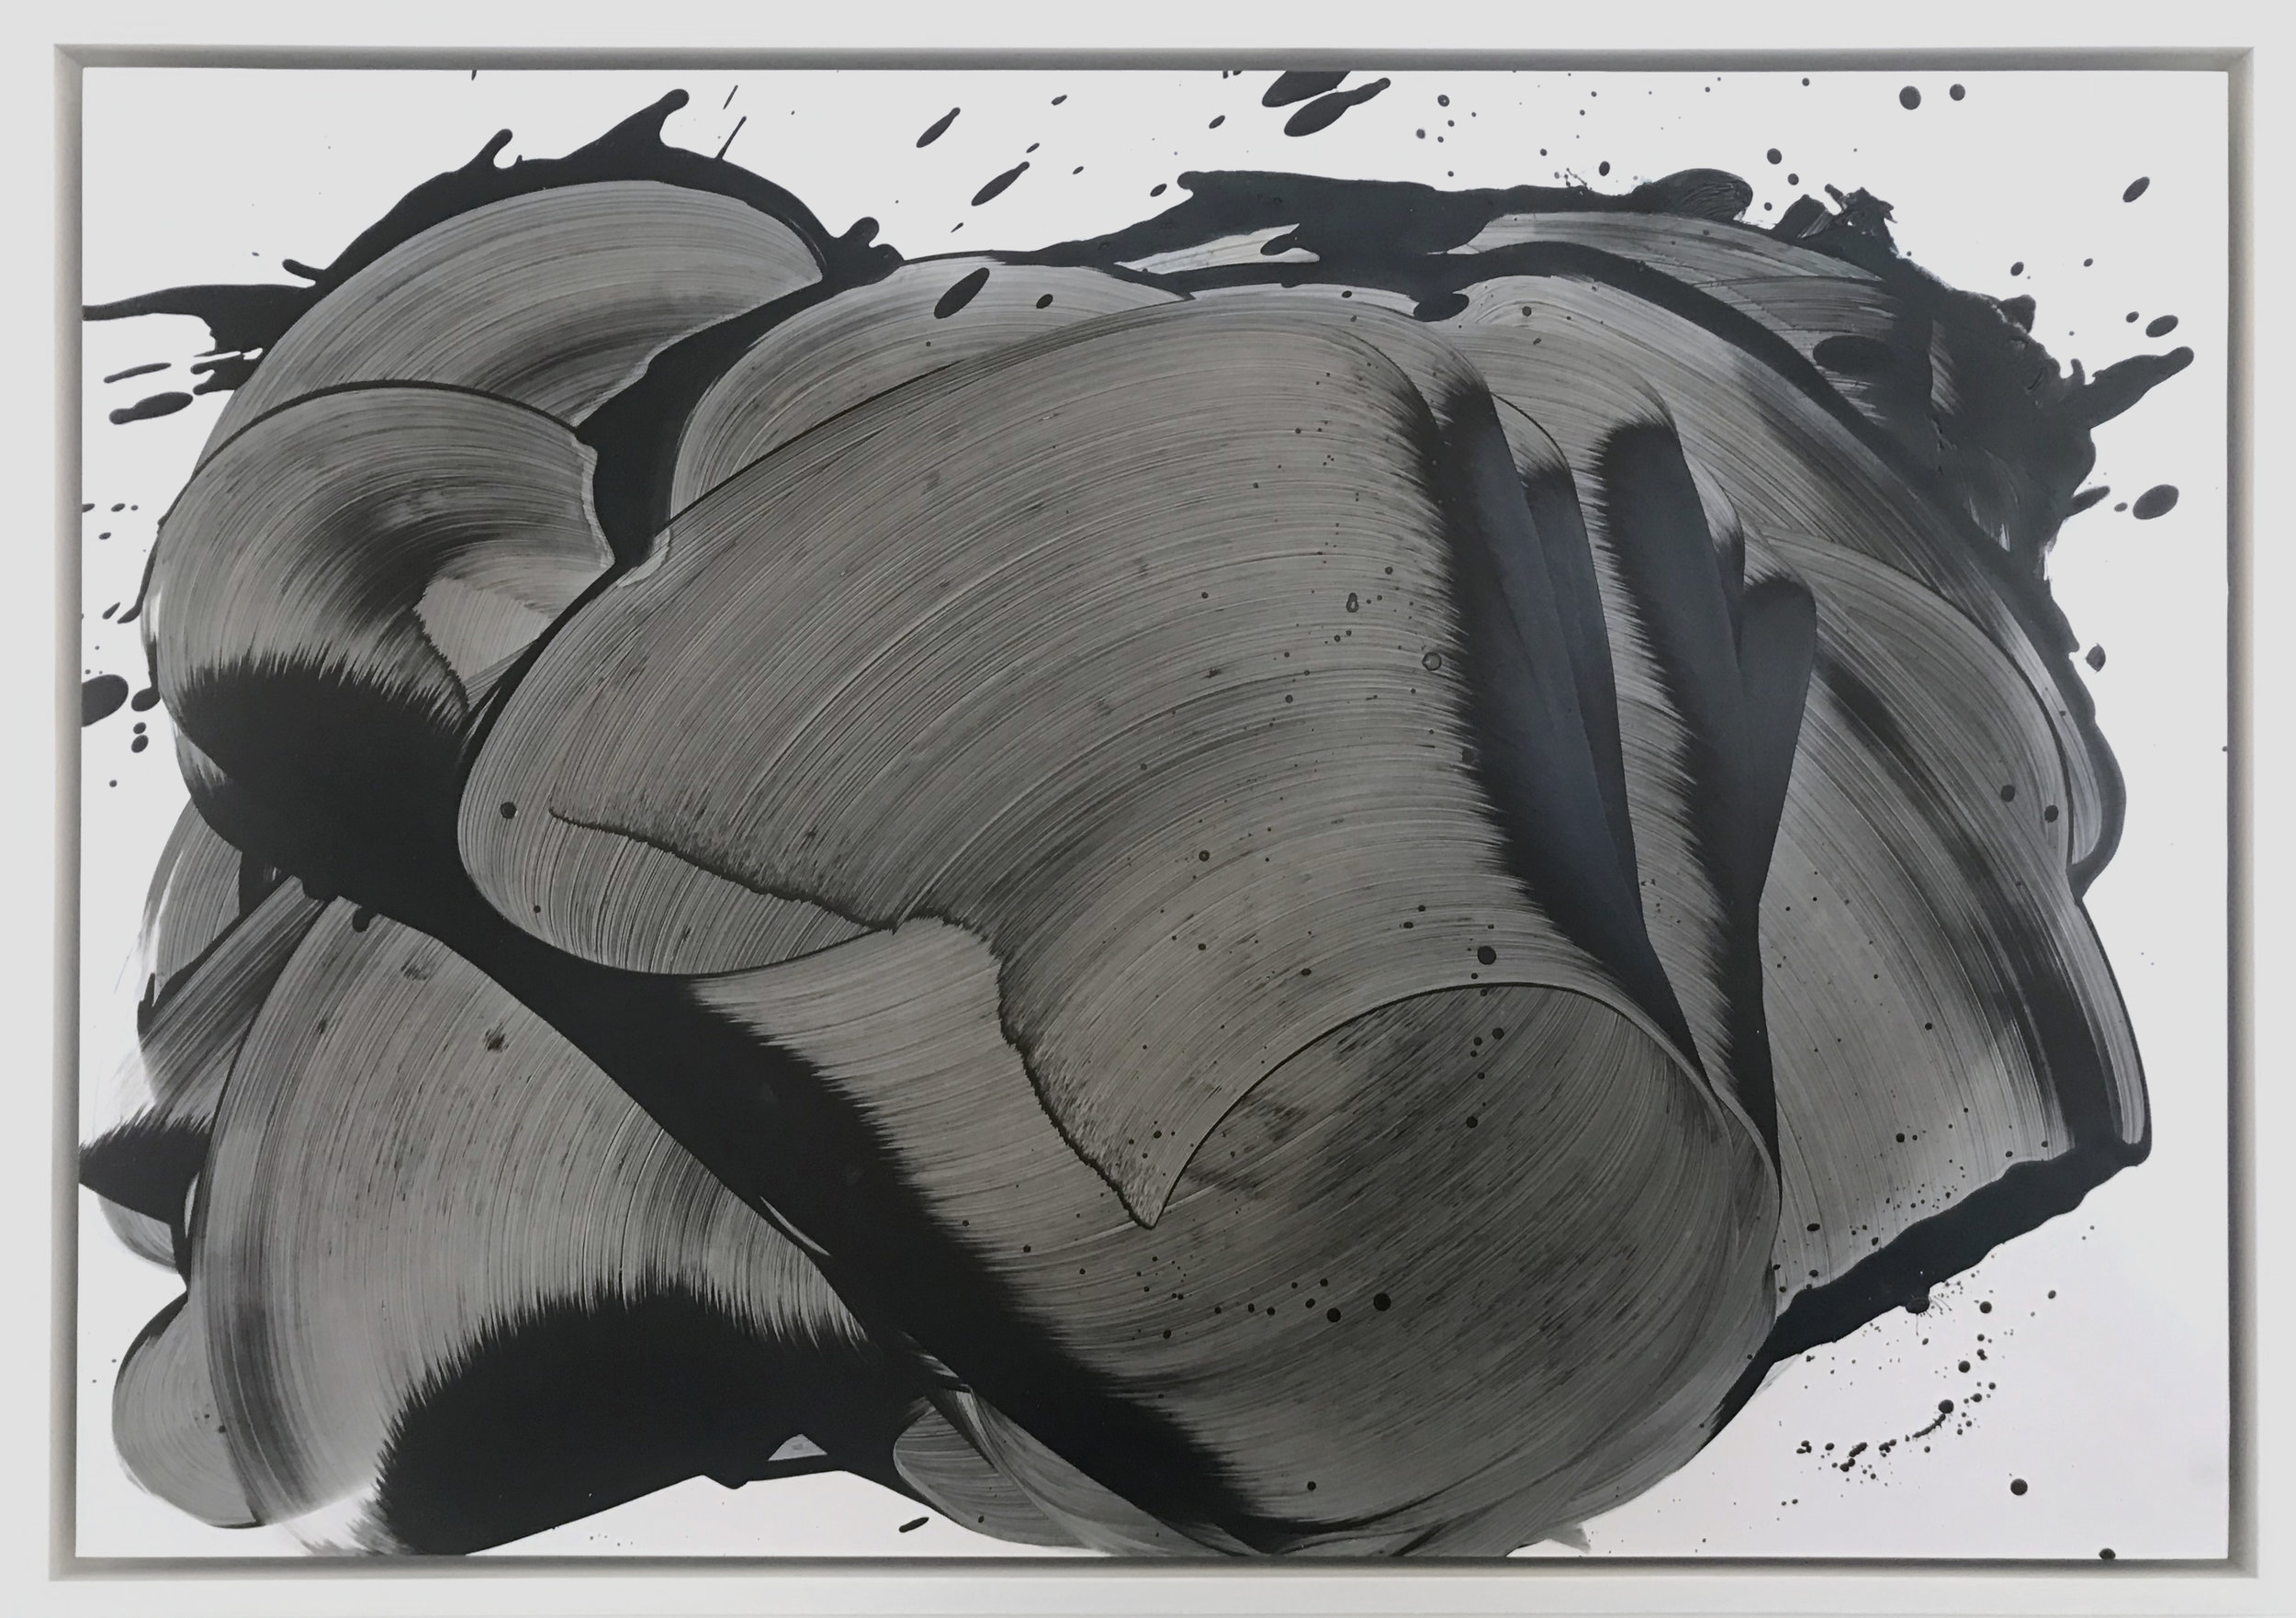 from the Charybdis series, 2018  Oil on paper  44.2 x 62.2 cm